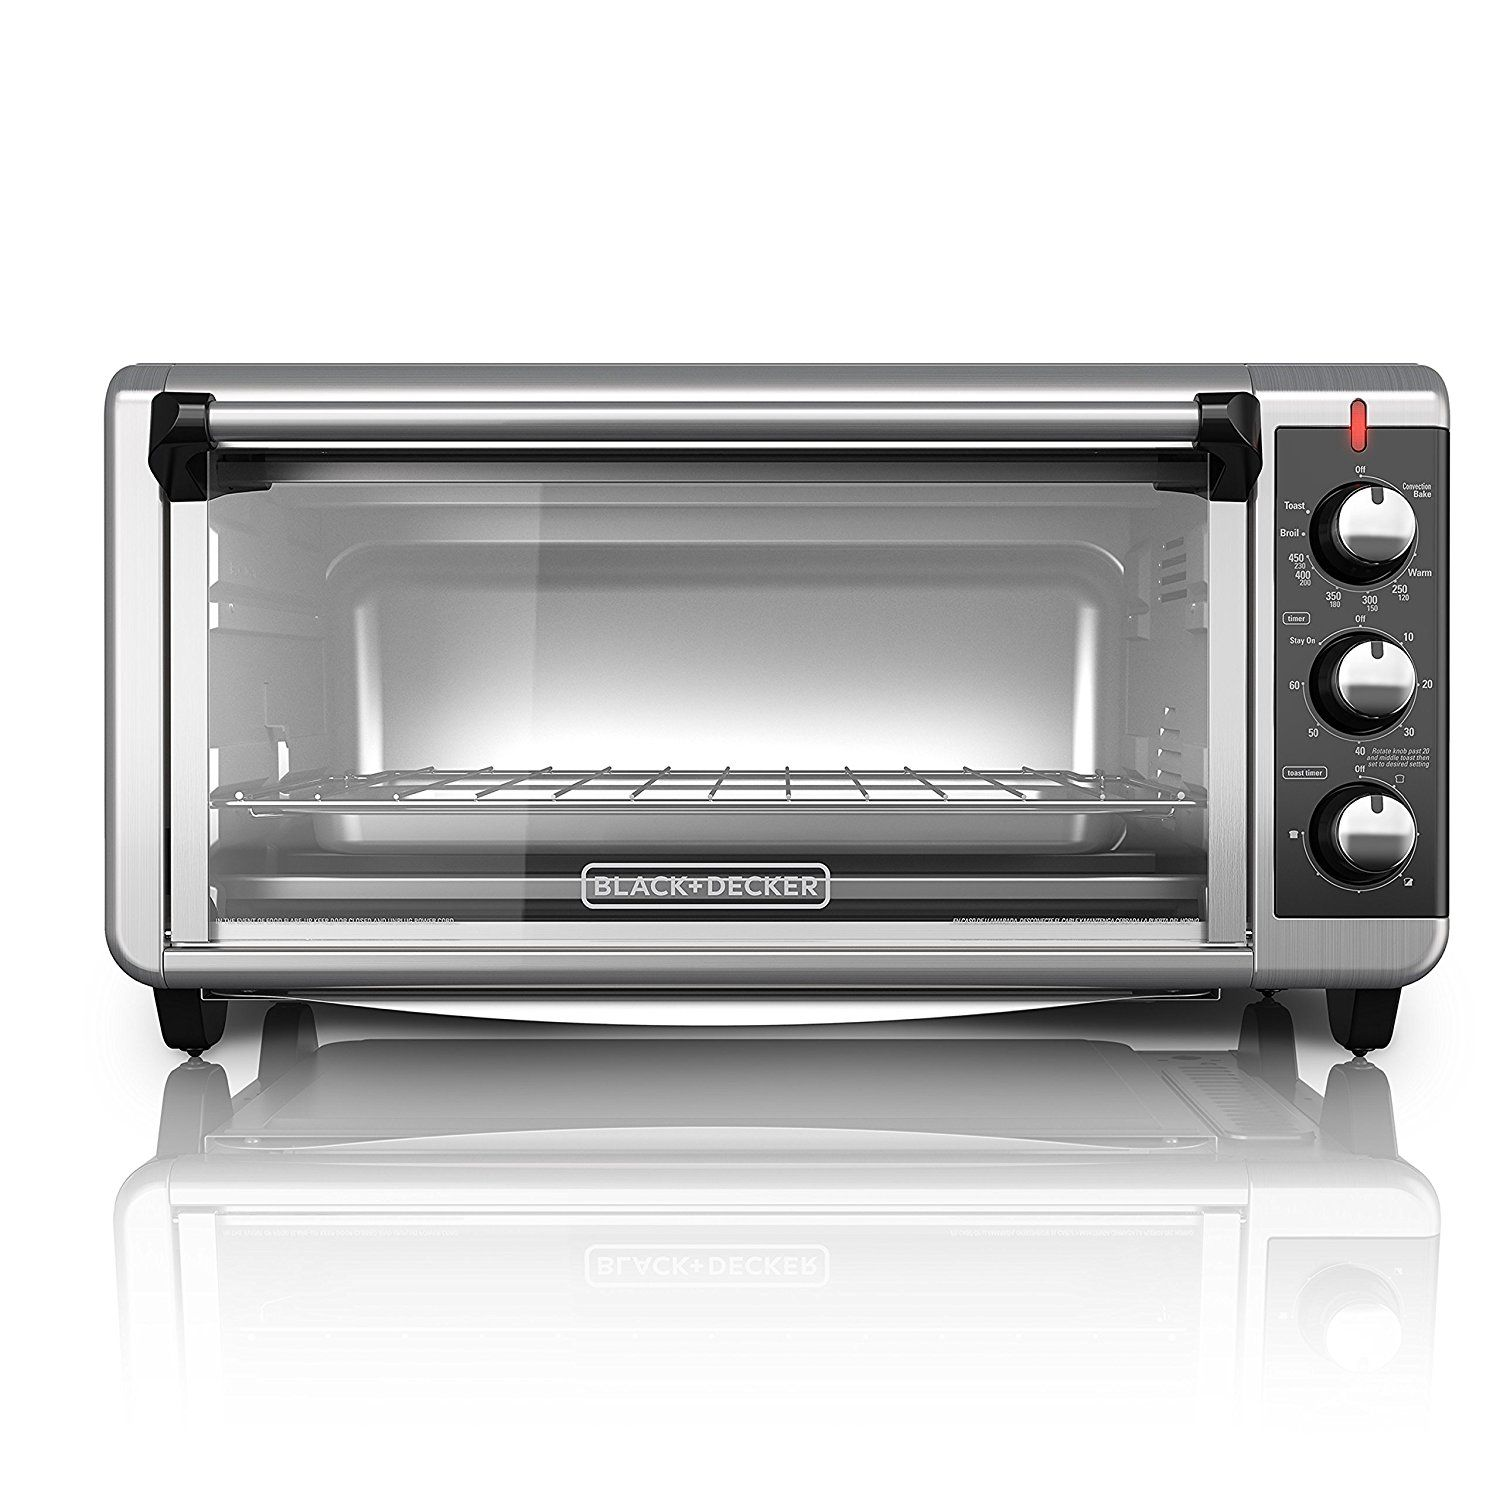 Black Decker To3250xsb Extra Wide 8 Slice Toaster Oven Stainless